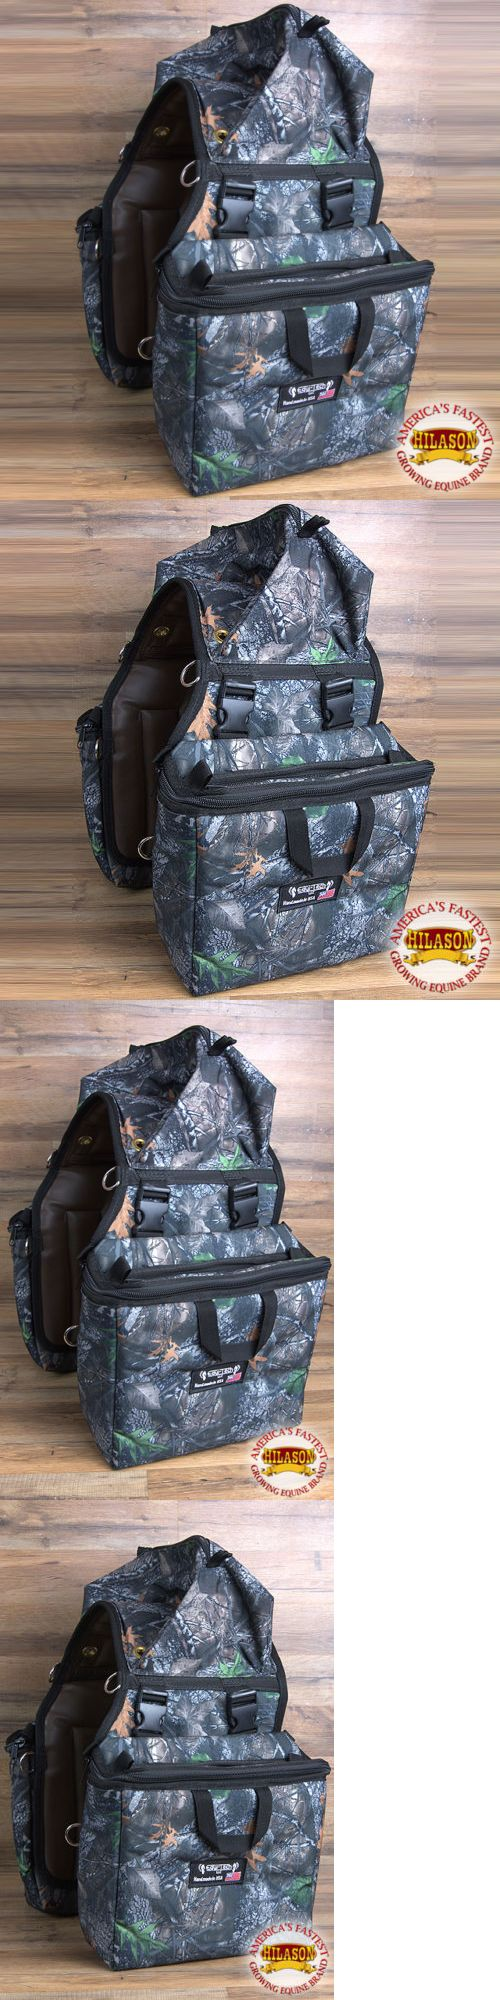 Saddle Bags 167243: 14X12x6 Equitech Detachable Insulated Horse Saddle Bag Side Bag Removal Camo BUY IT NOW ONLY: $99.95